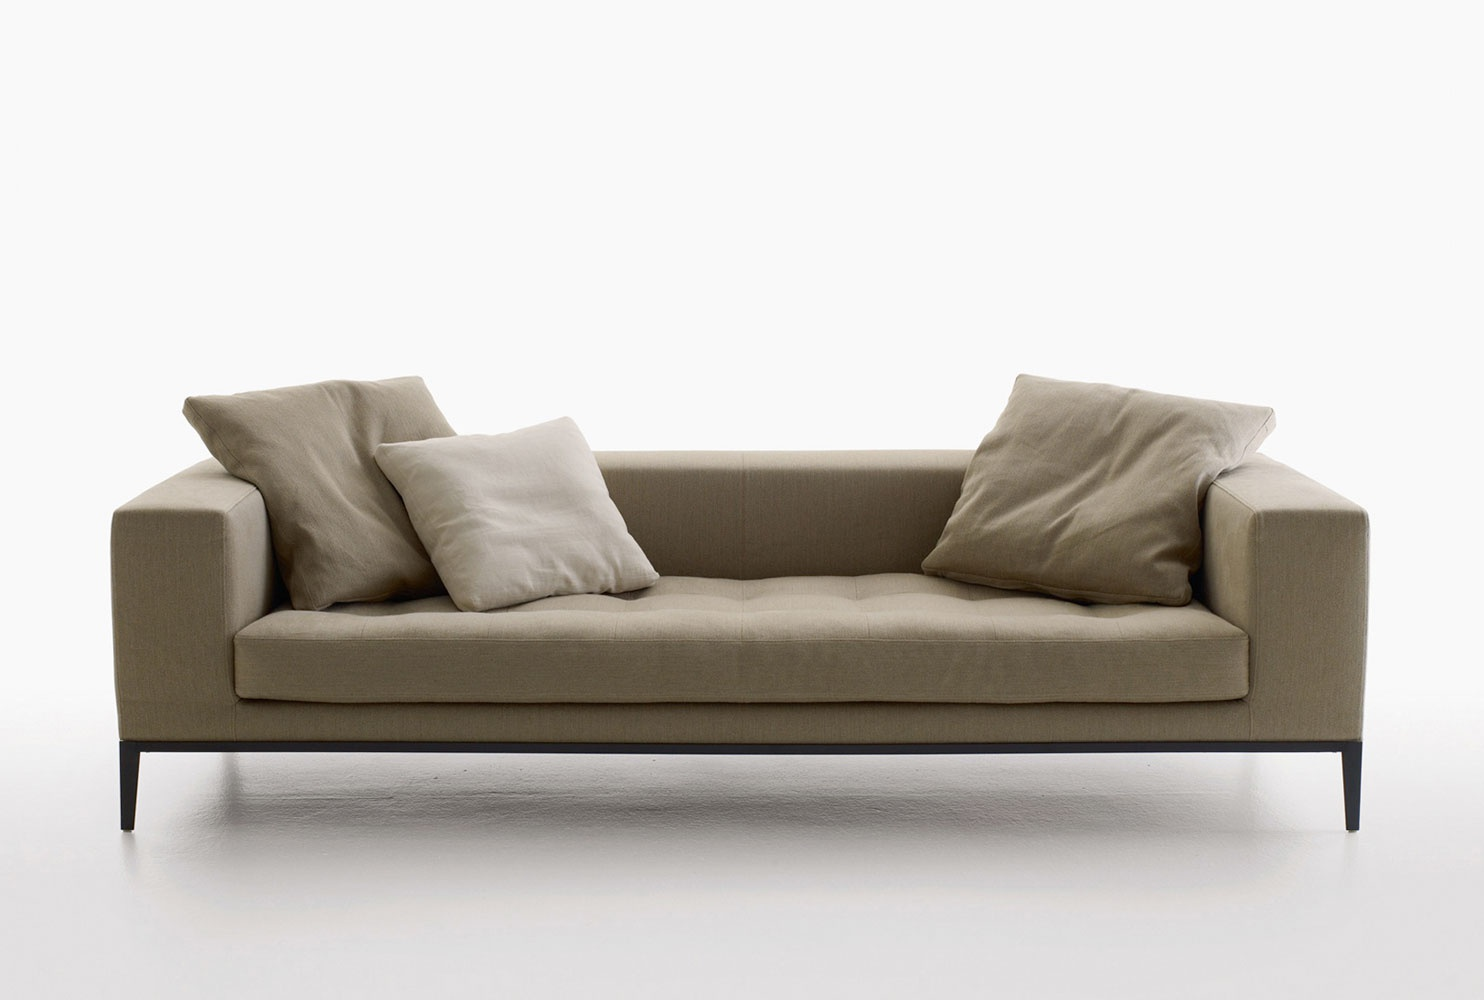 A Sofa With A Low Back Simplex Maxalto Luxury Furniture Mr